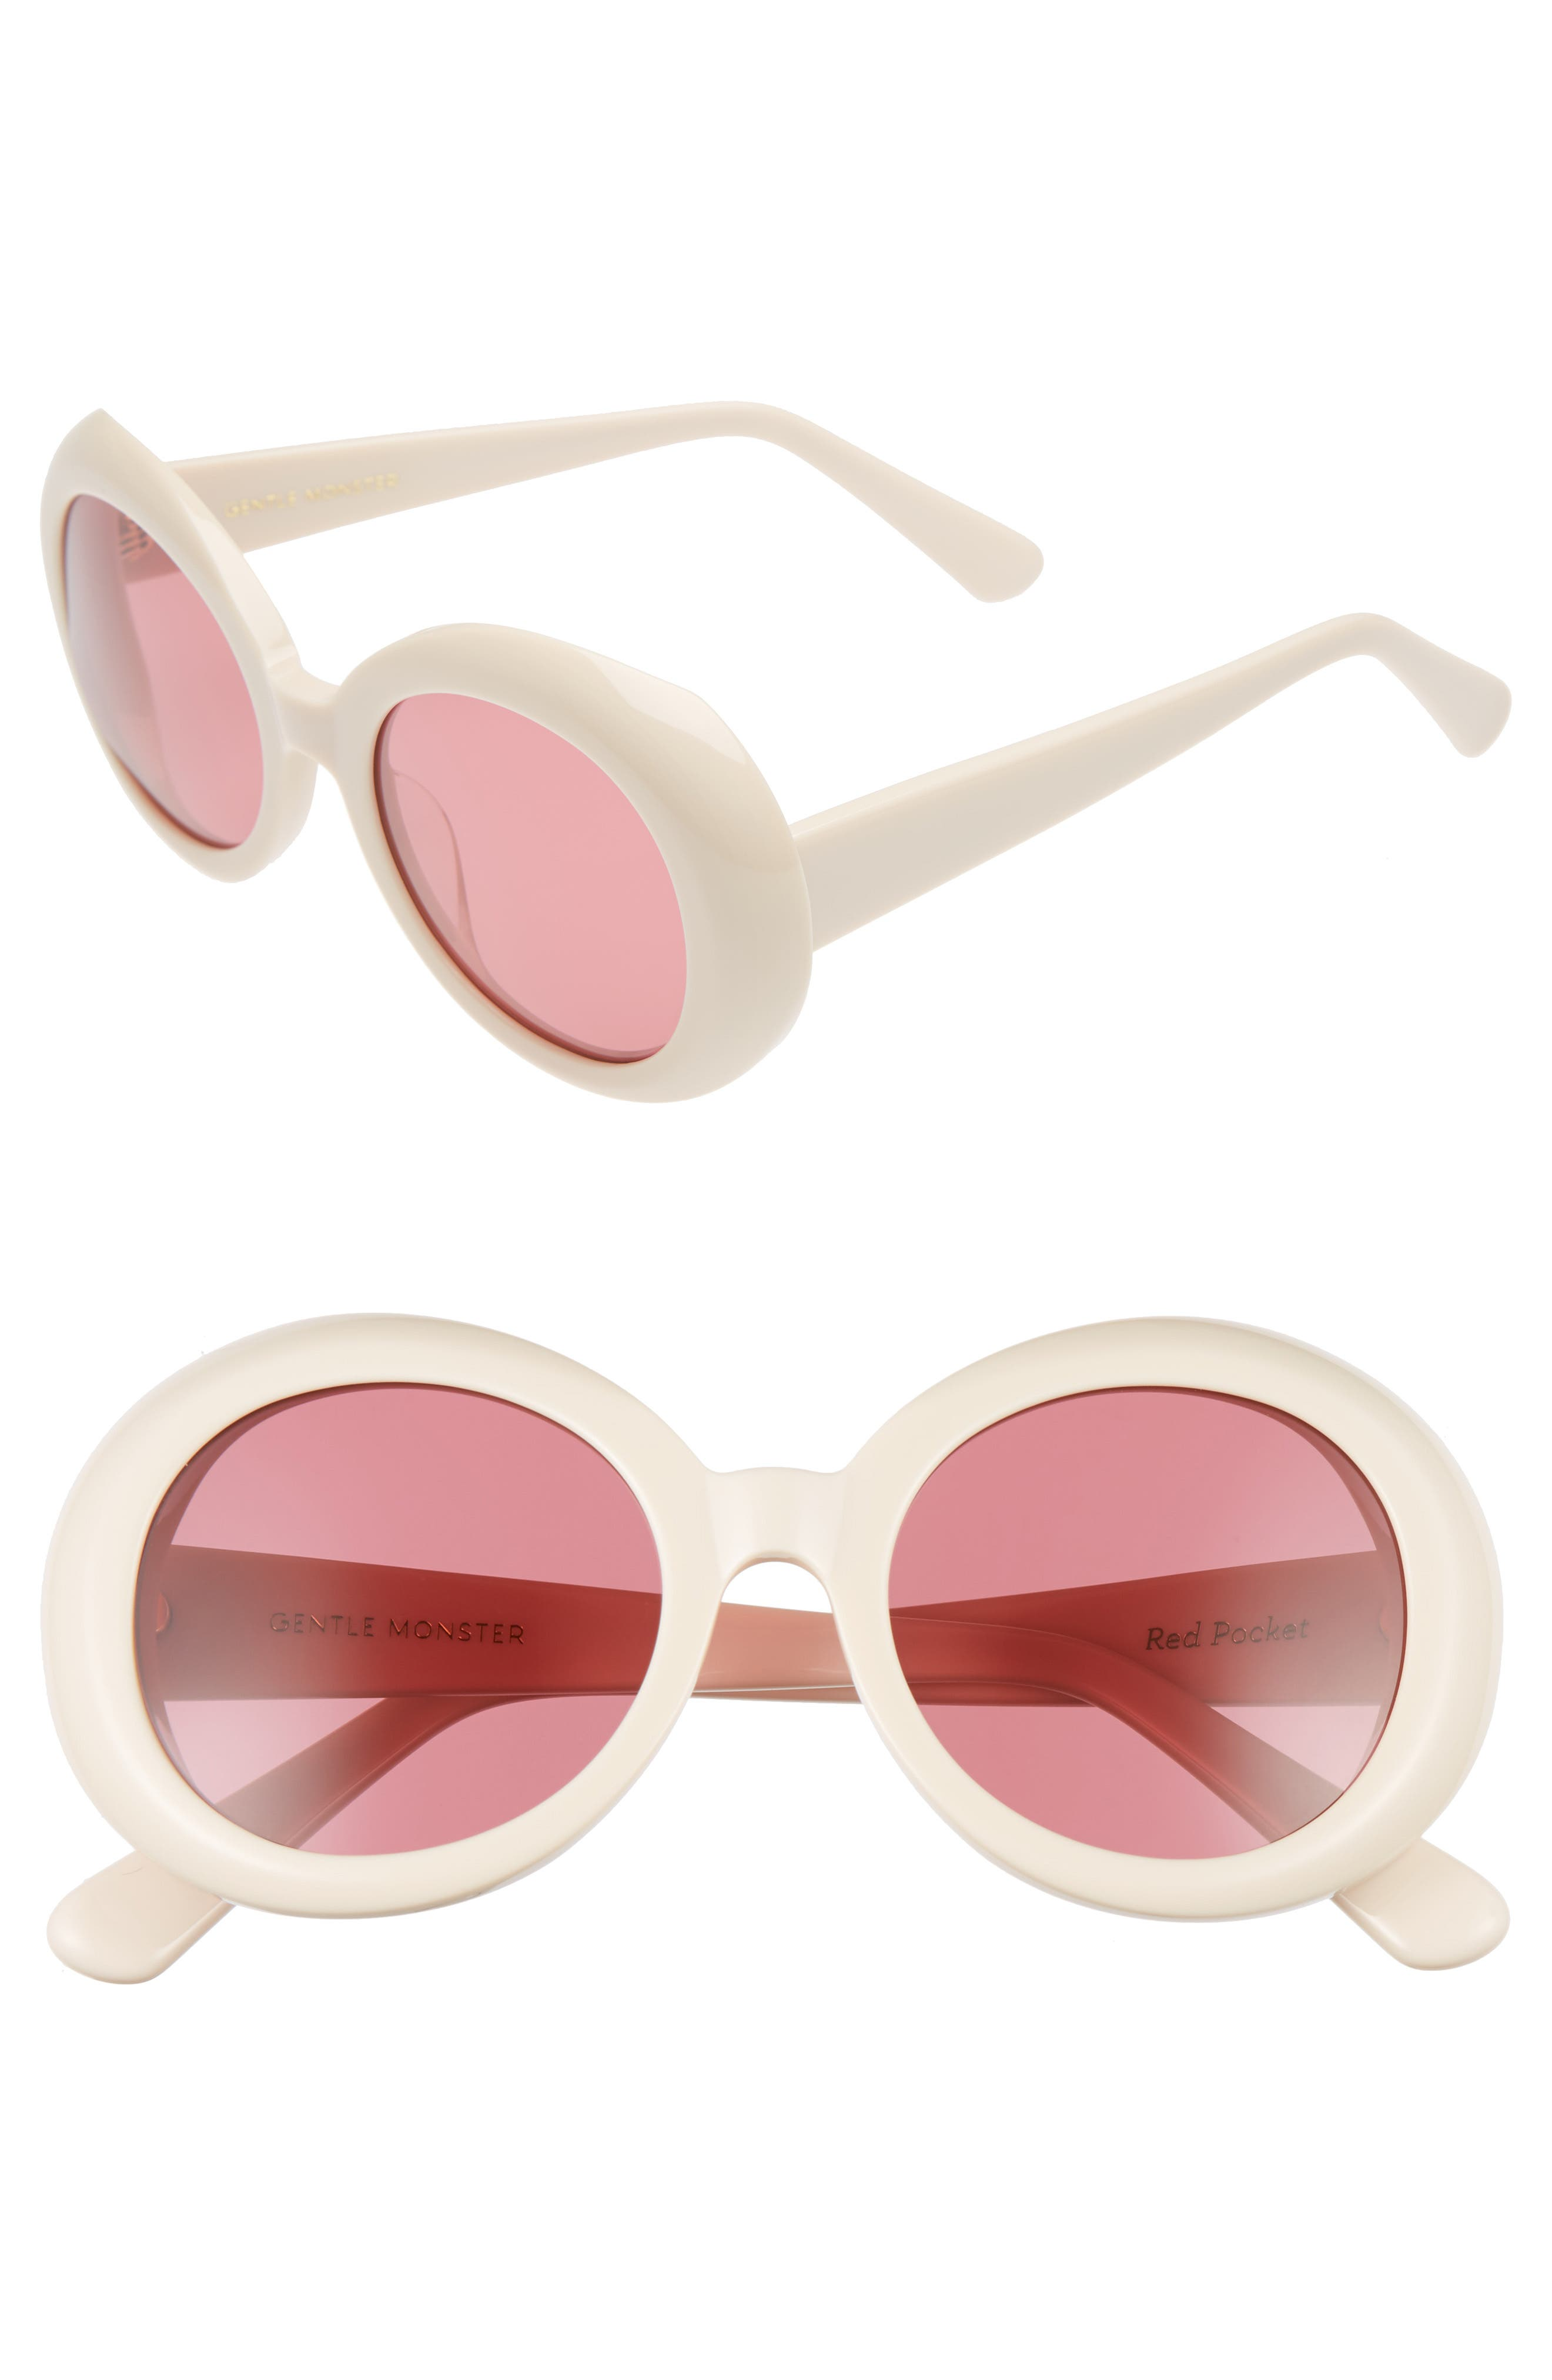 Red Pocket 52mm Round Sunglasses,                         Main,                         color, Ivory